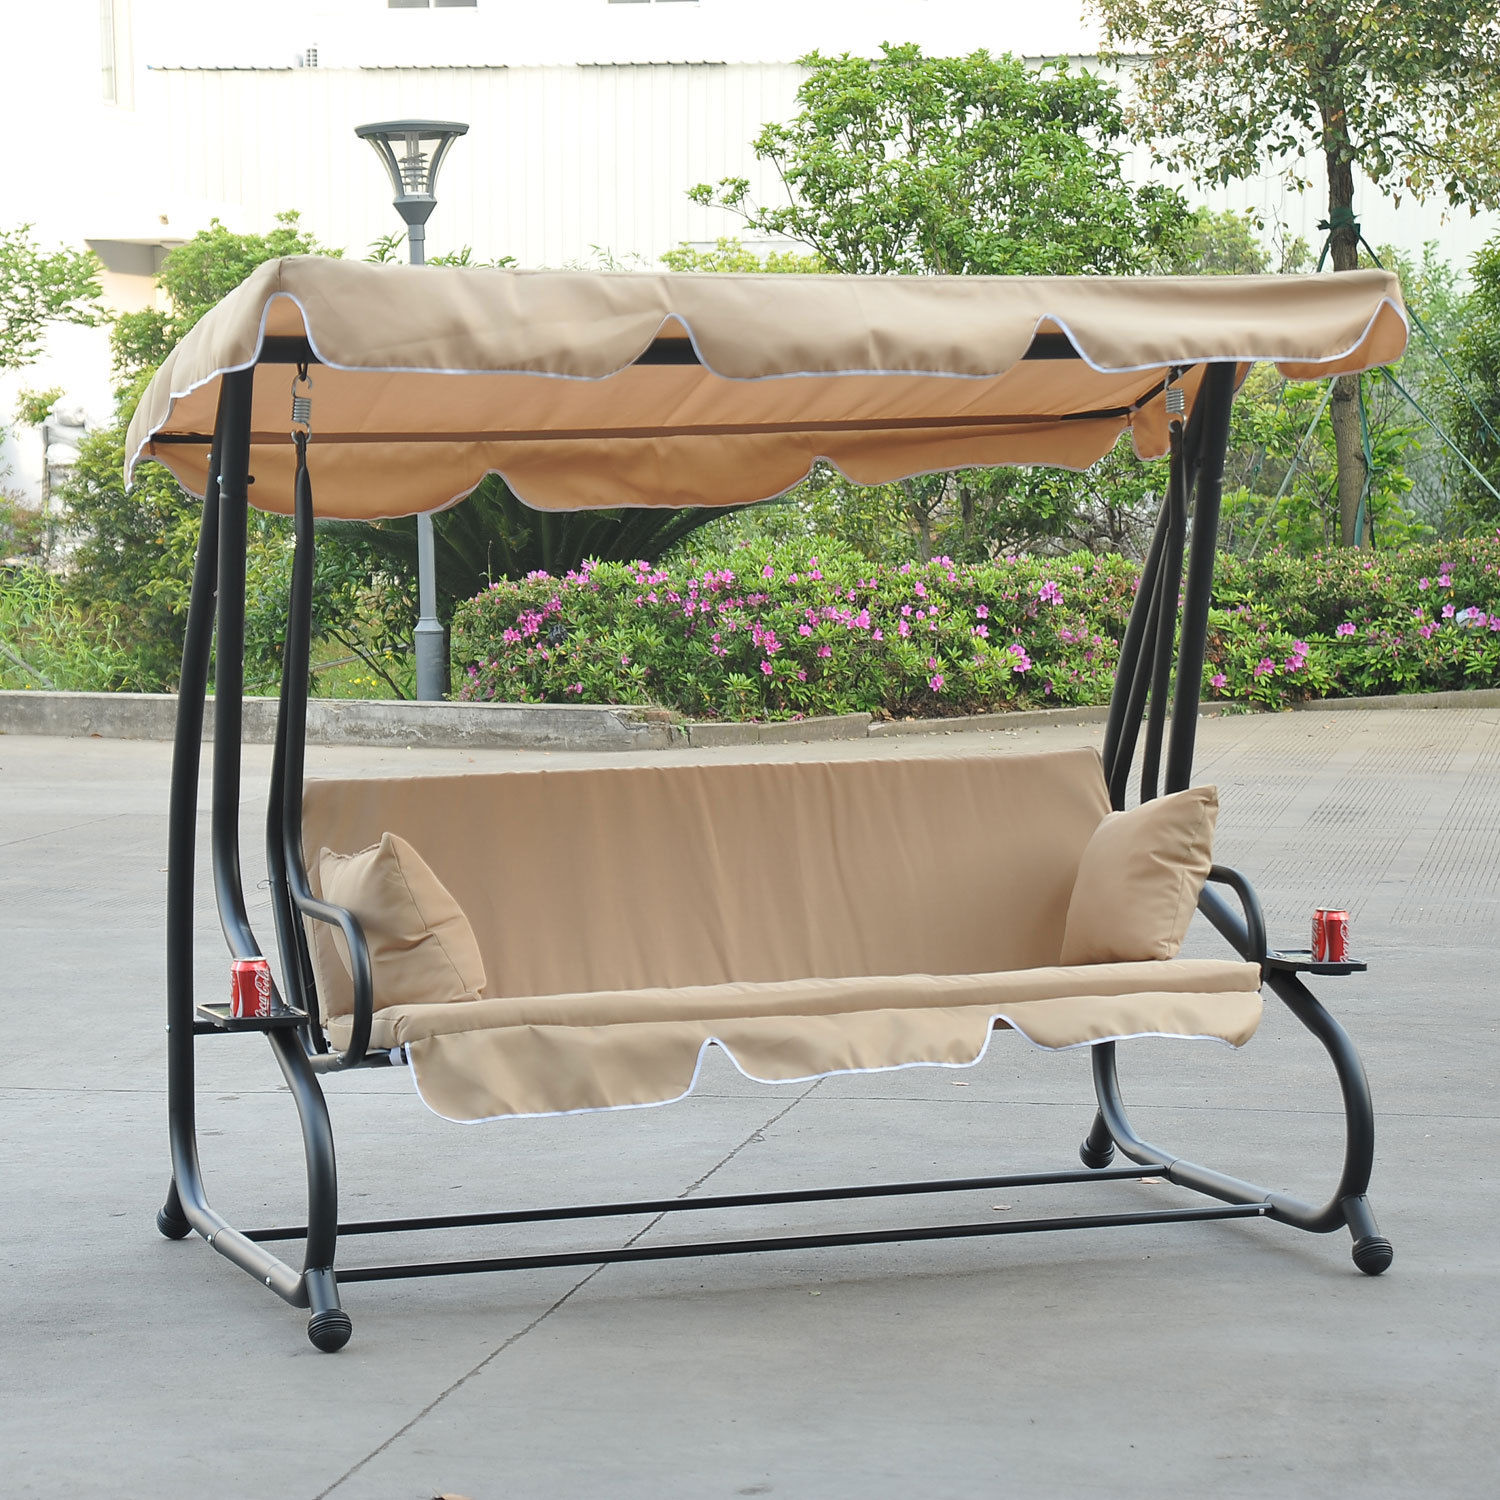 Outdoor 3 Person Patio Porch Swing Hammock Bench